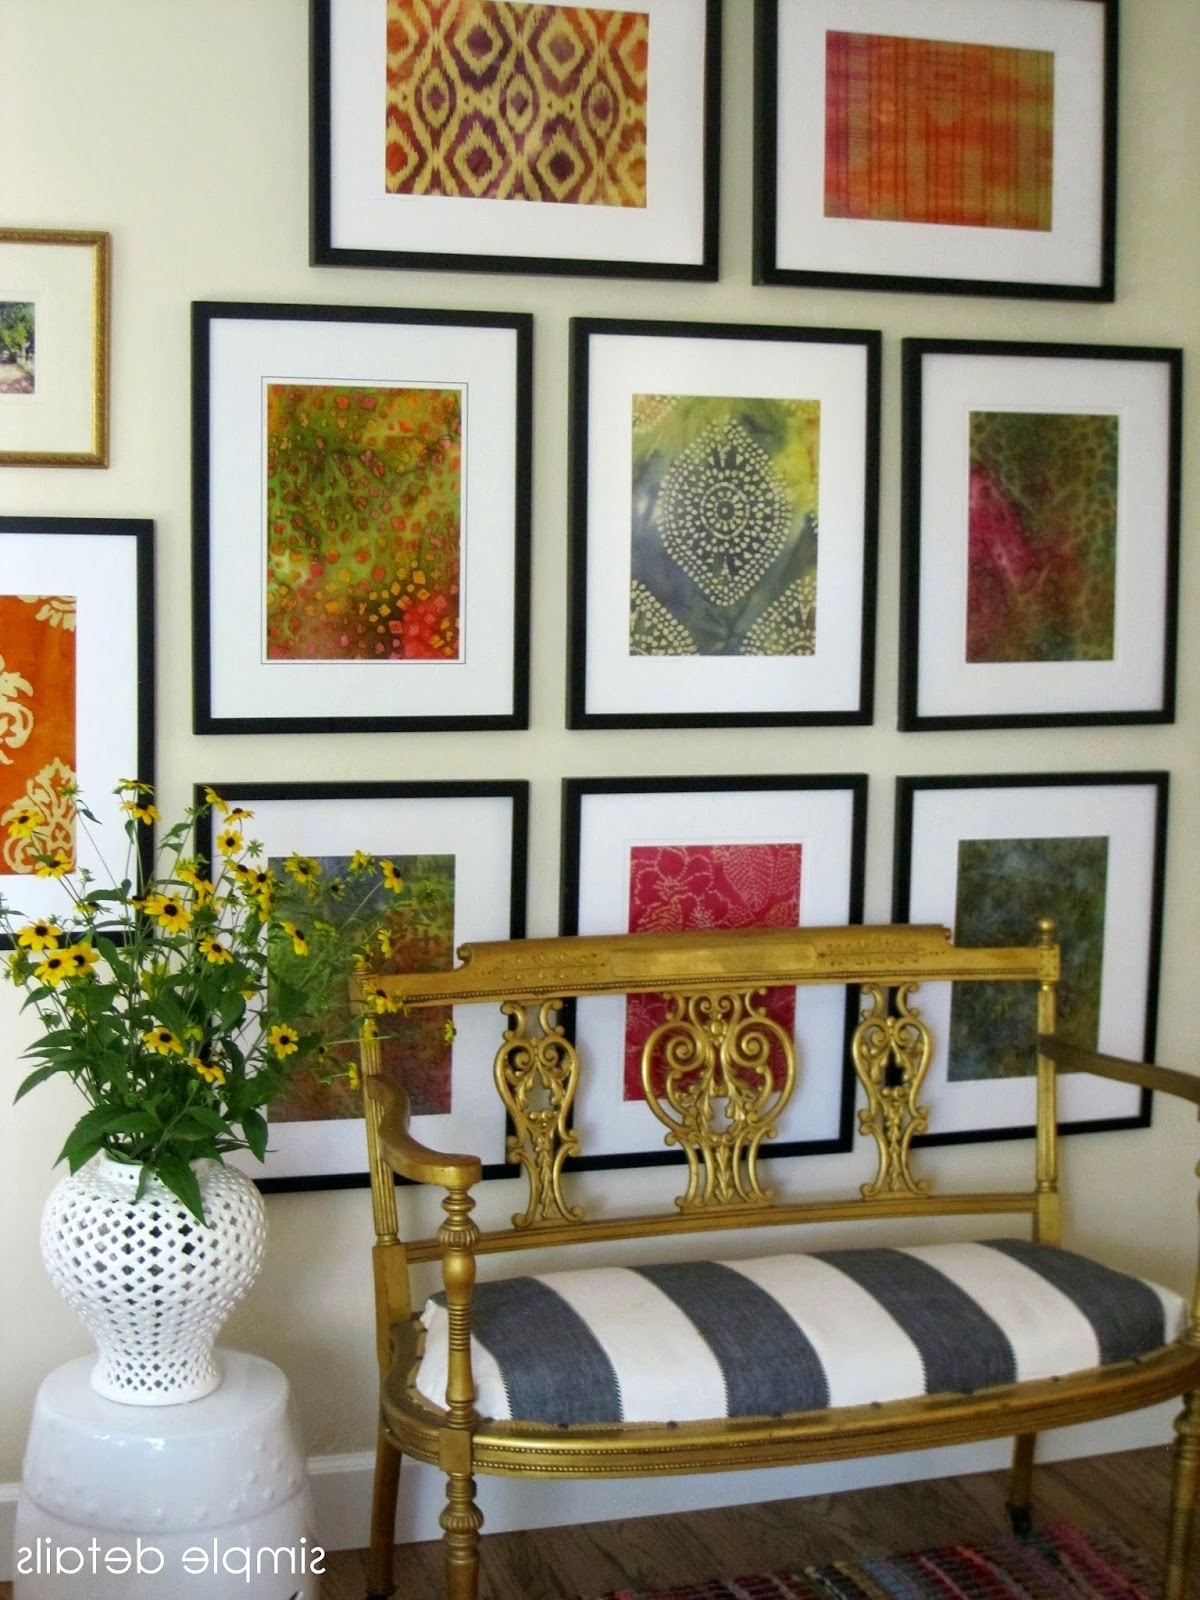 Fashionable Simple Details: Diy Framed Batik Fabric Intended For Fabric Wall Art Patterns (View 9 of 15)